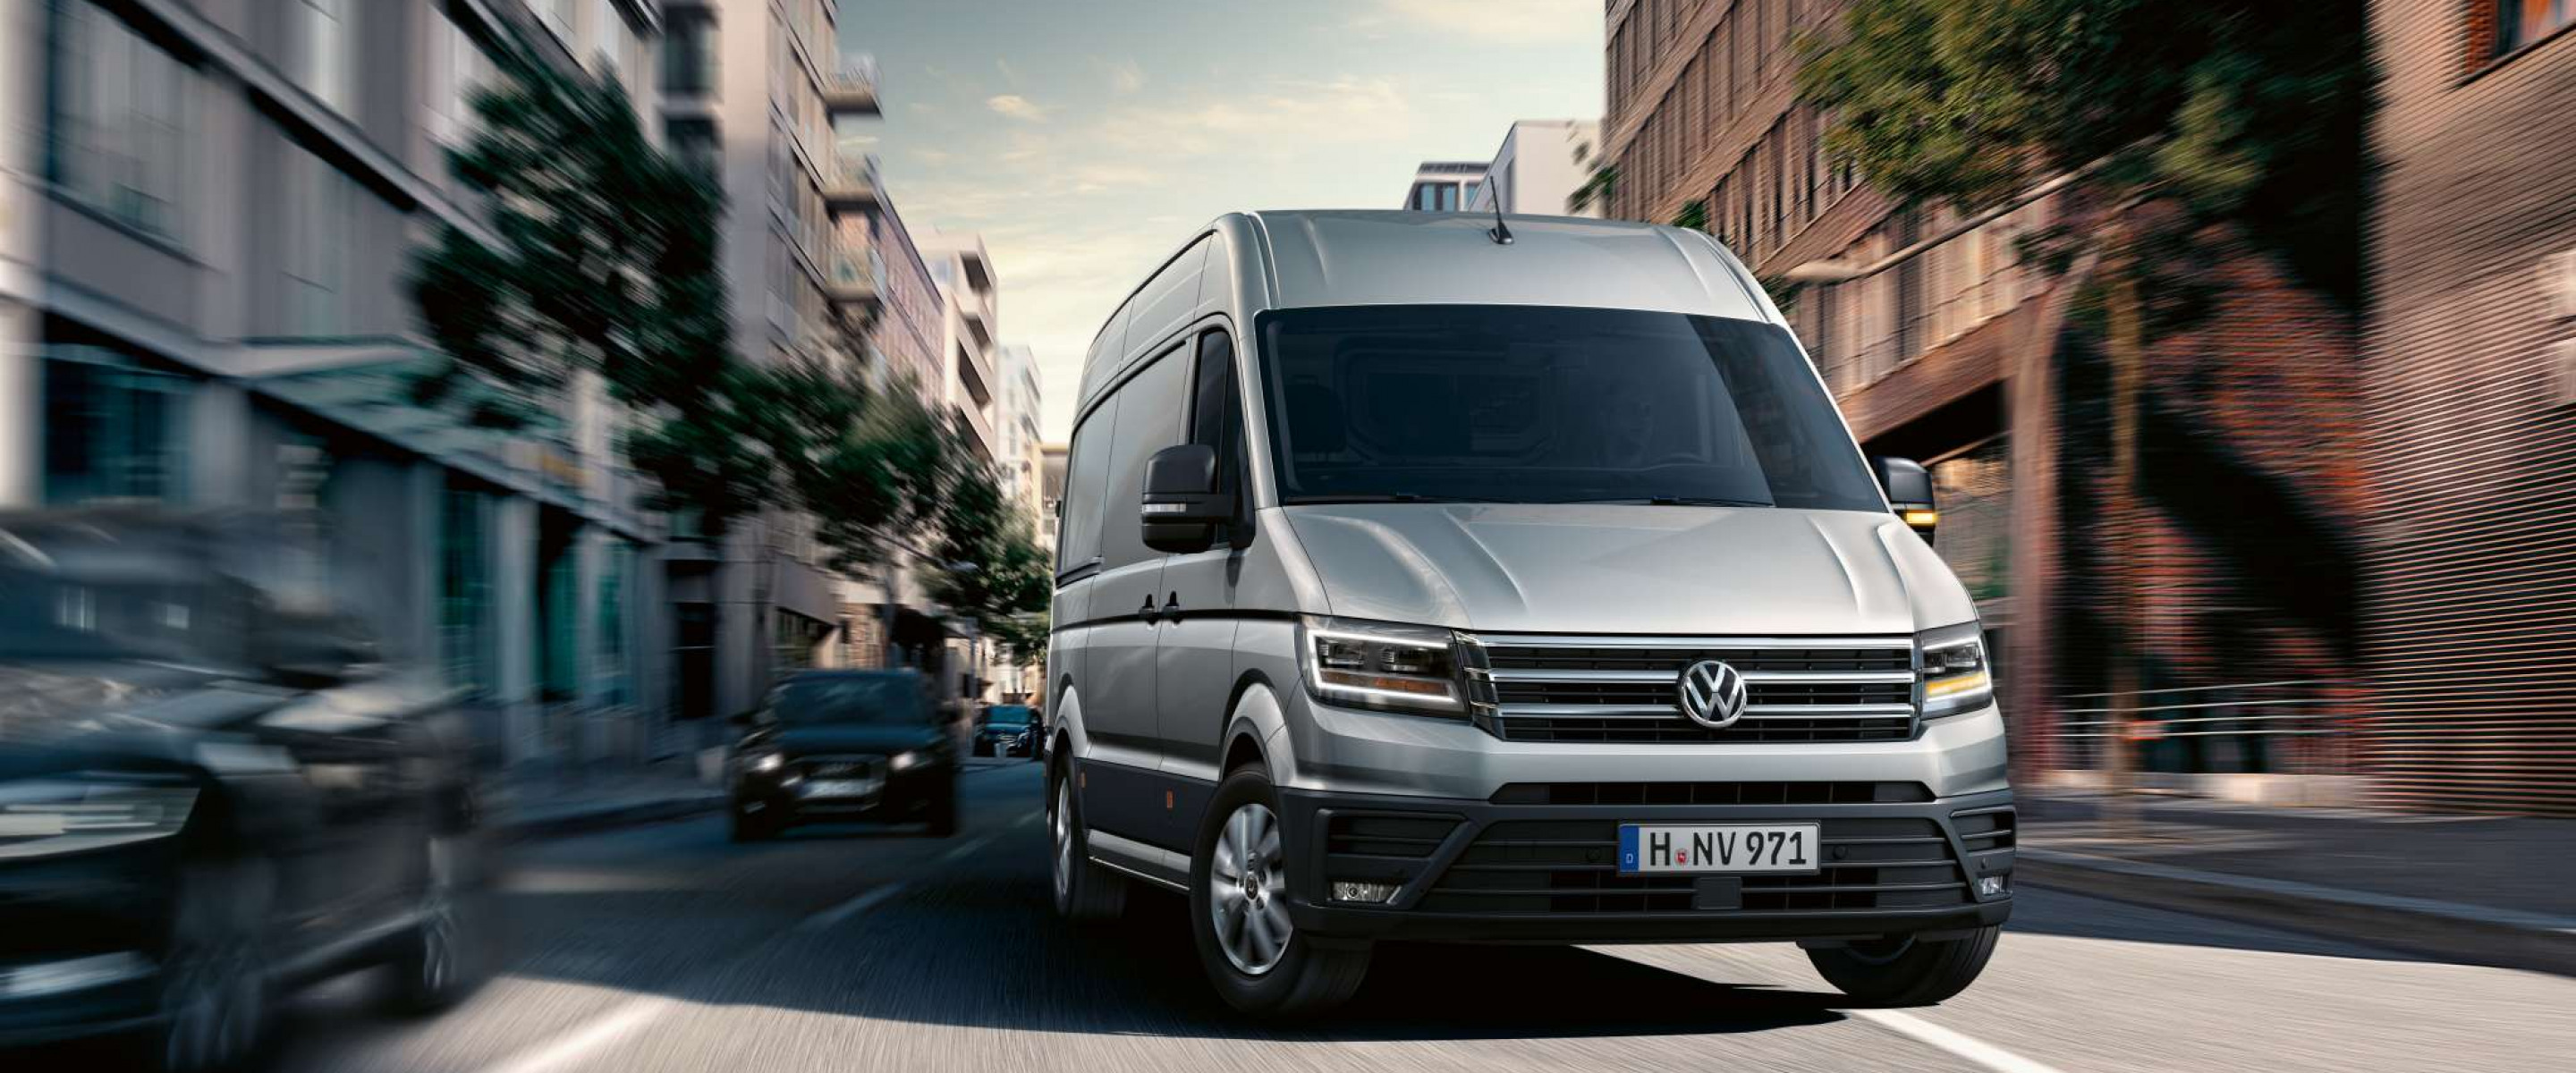 https://aumhyblfao.cloudimg.io/crop/2880x1200/n/https://s3.eu-central-1.amazonaws.com/bourguignon-nl/10/201908-volkswagen-crafter-04.jpg?v=1-0